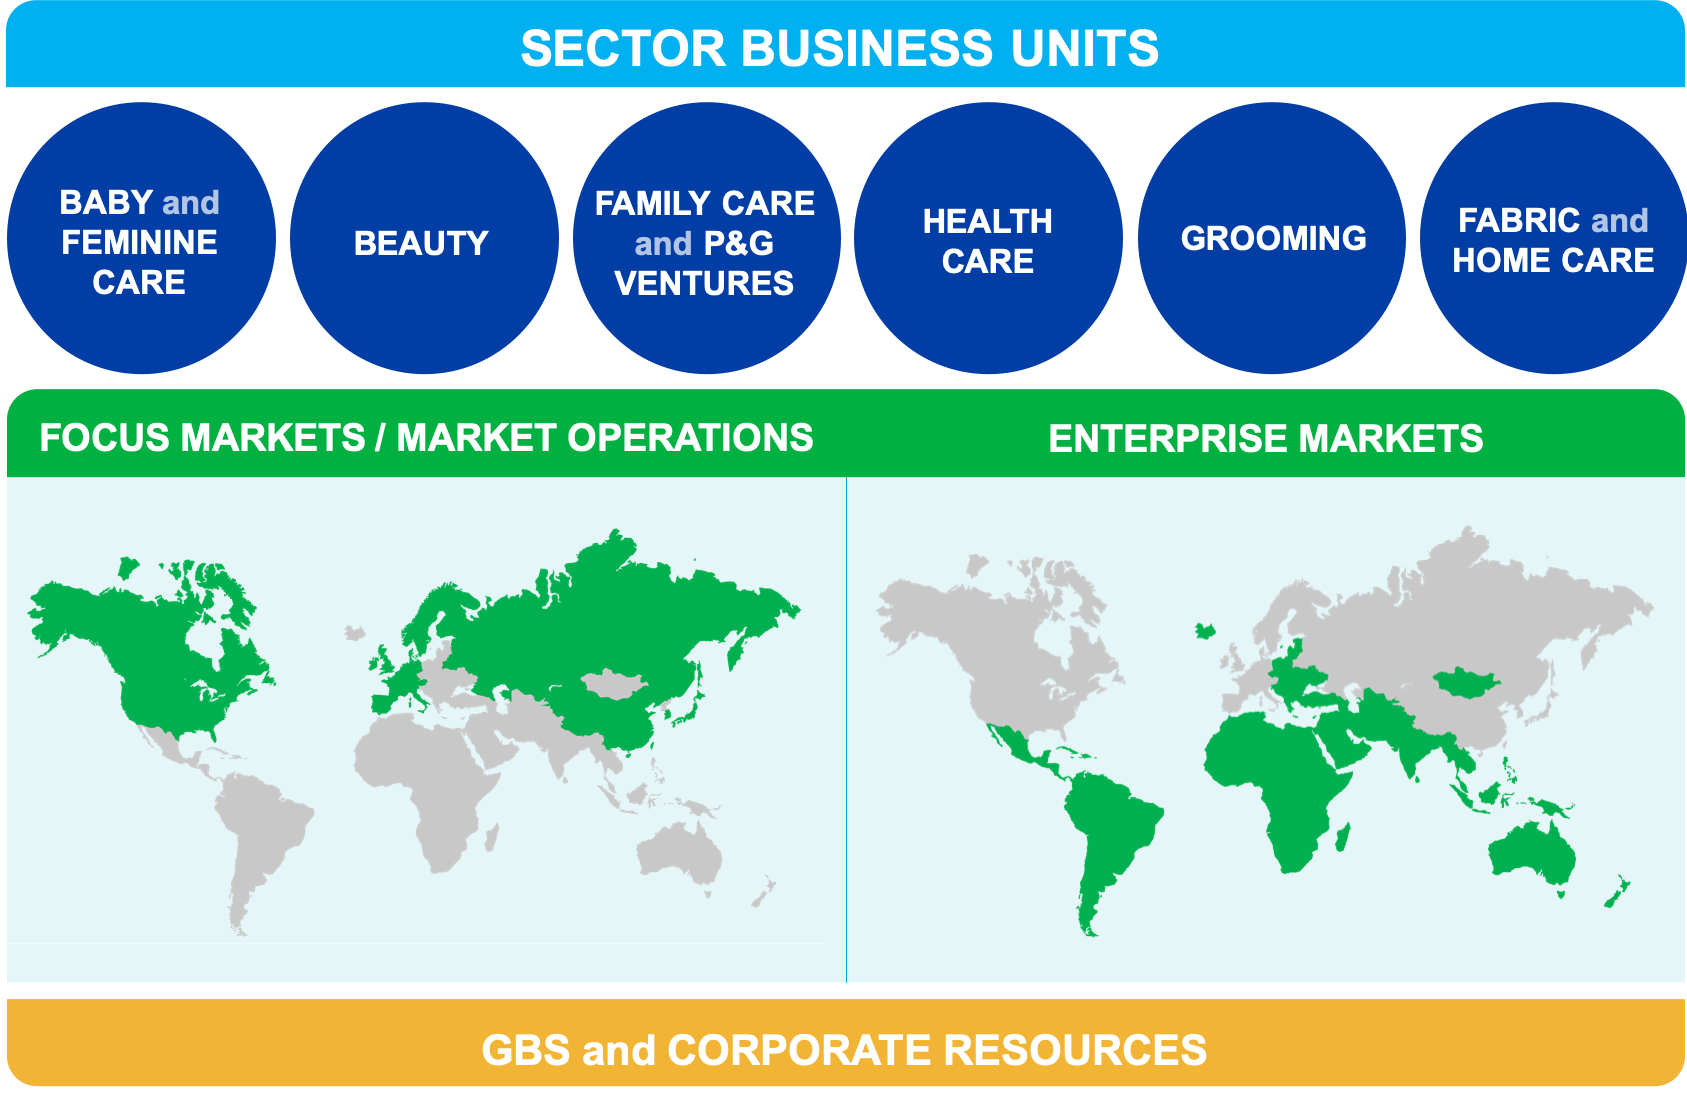 Sector business units